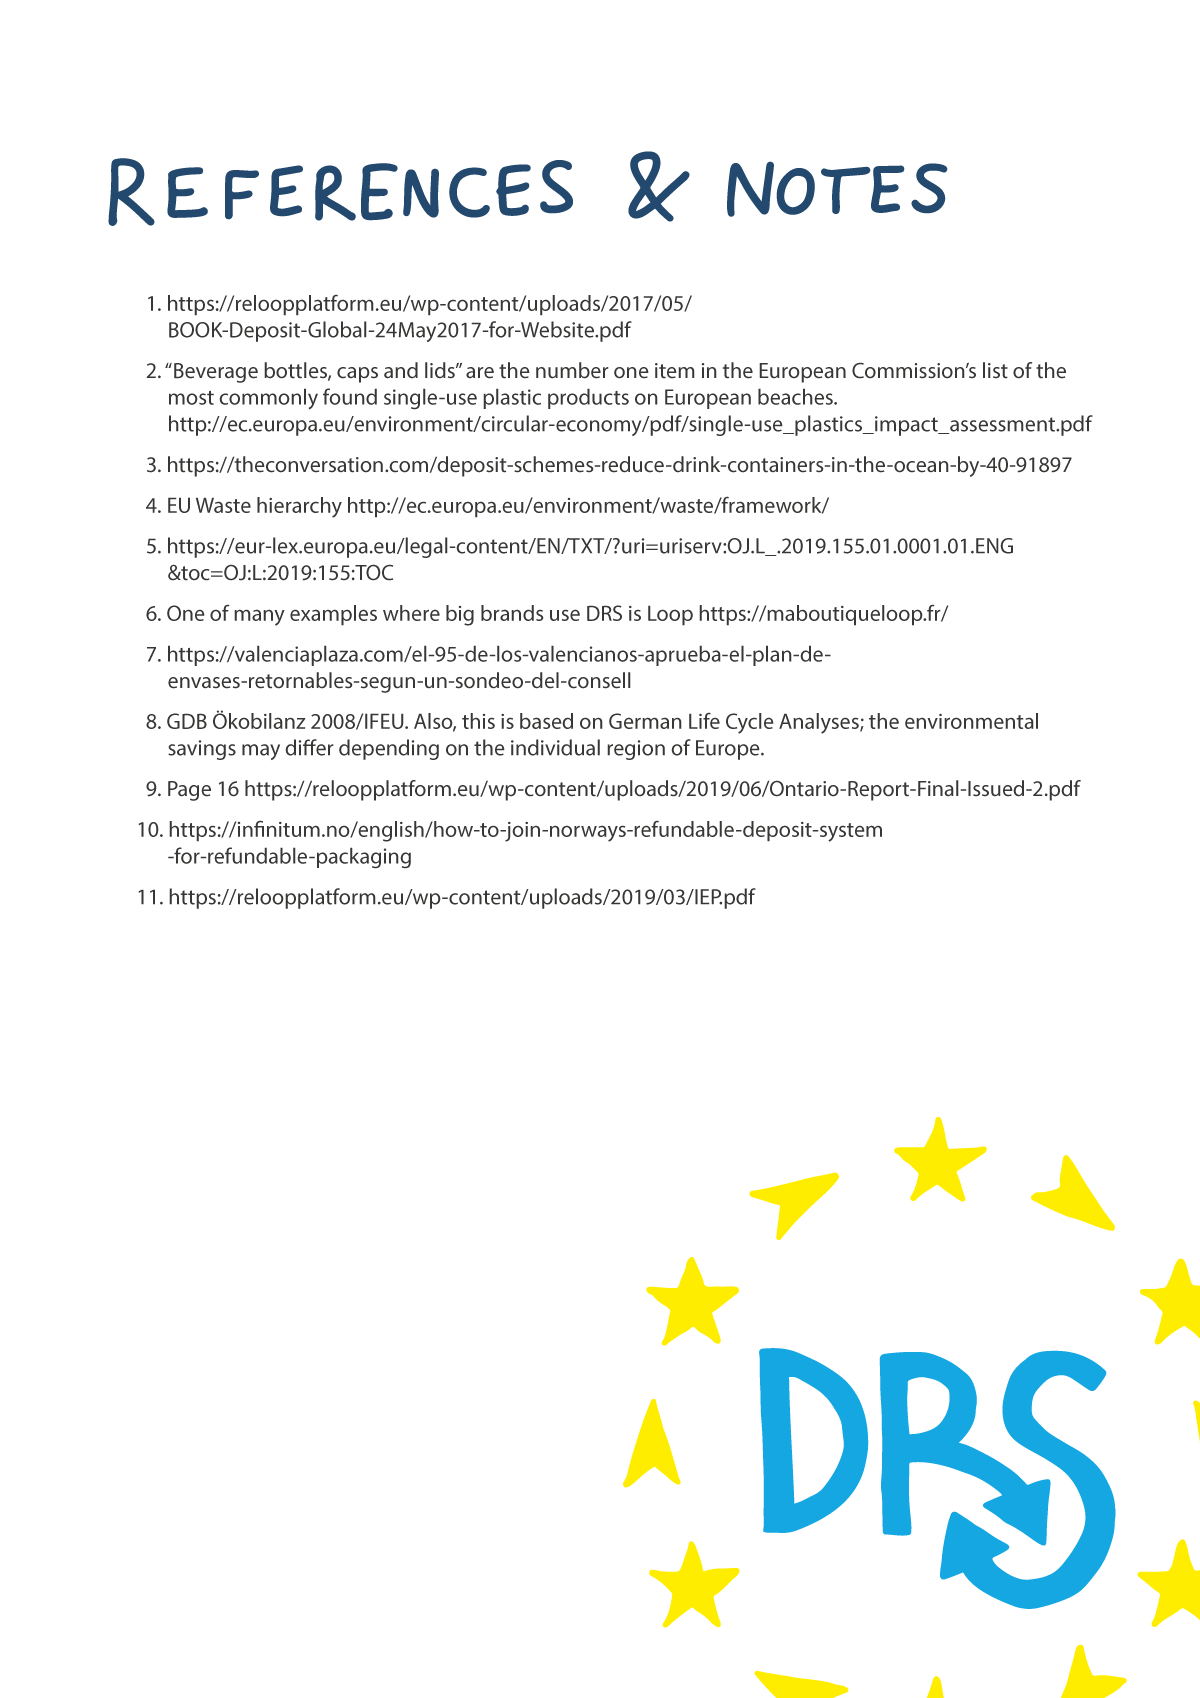 DRS Manifesto - References & Notes